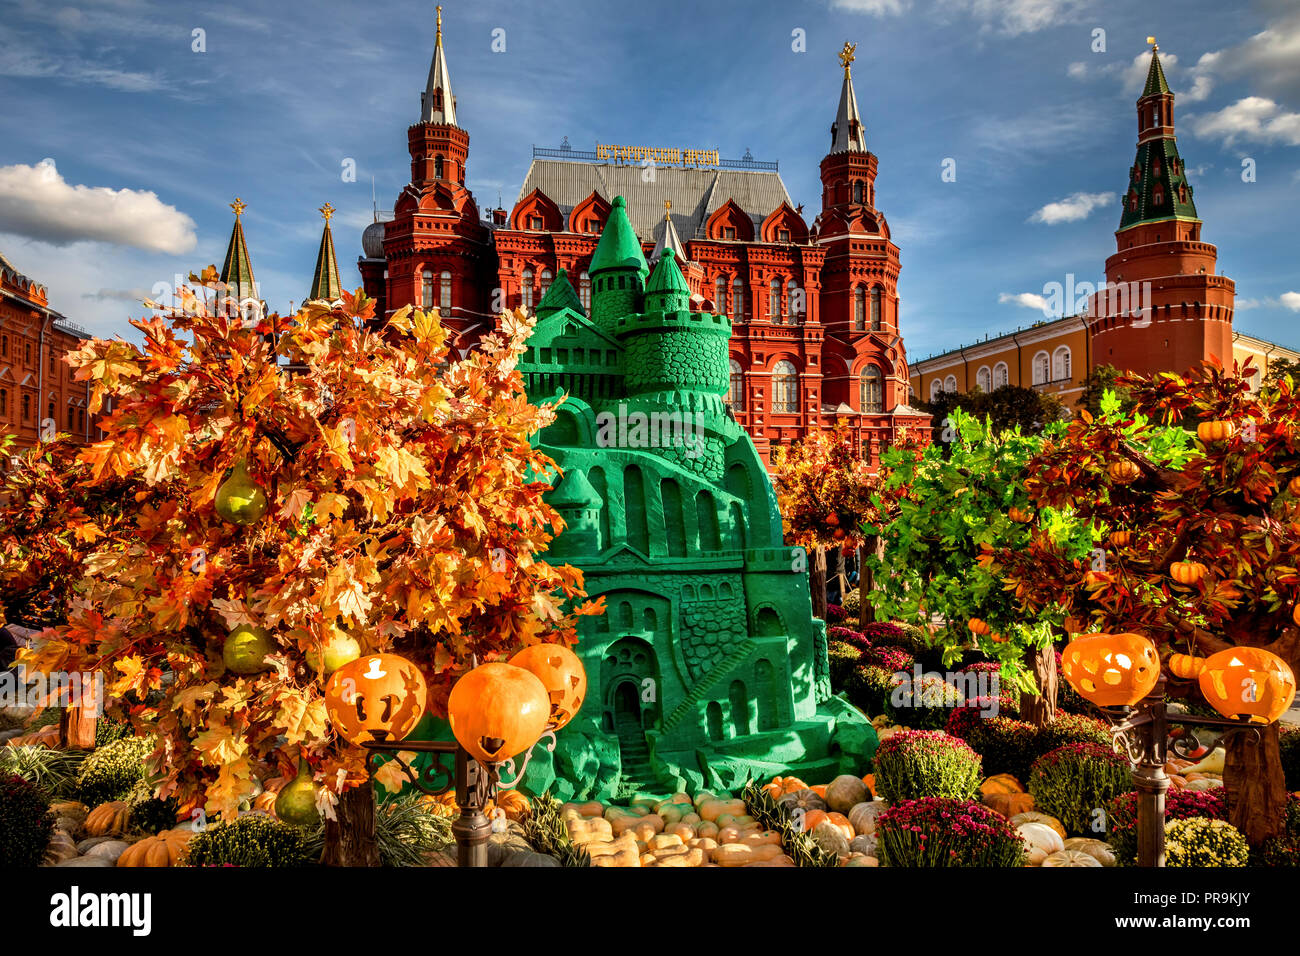 Art-object 'The Castle of the Sorceress' based on the fairy tale 'The Wizard of the Emerald City' installed on the Manege Square on central Moscow dur - Stock Image